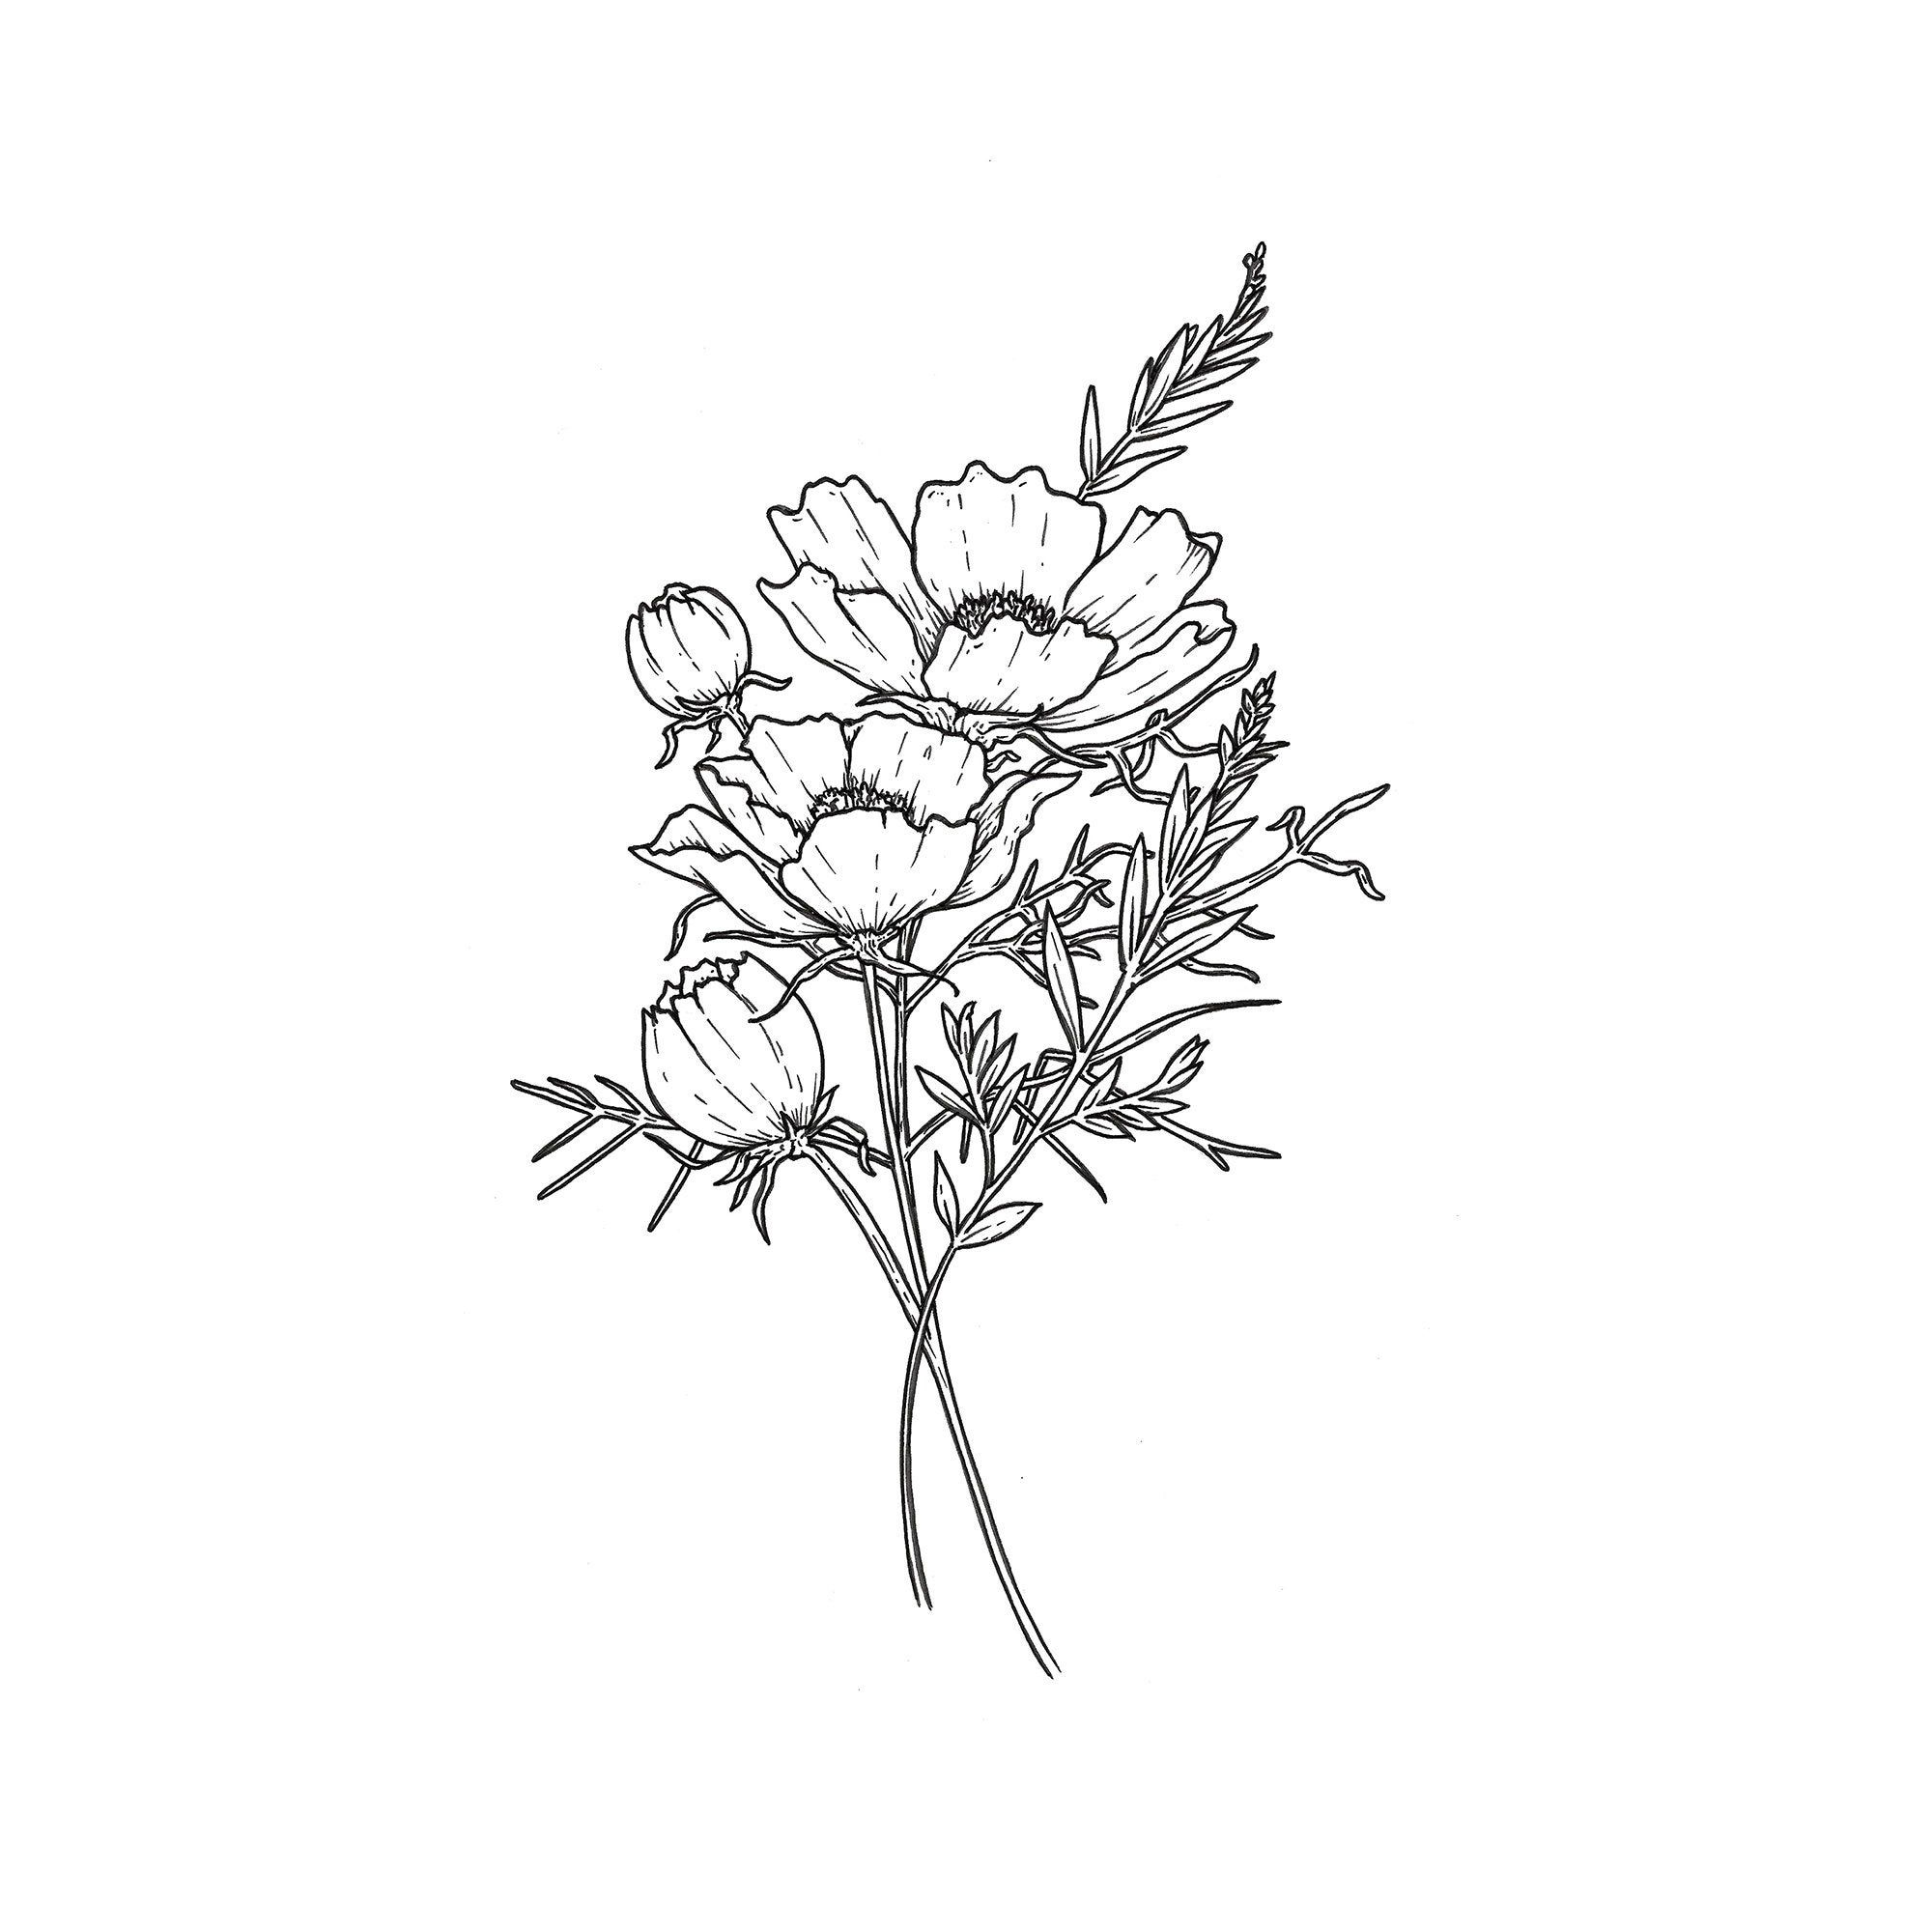 Image Result For Cosmos Flower Tattoo Birth Flower Tattoos Cosmos Tattoo Tattoos